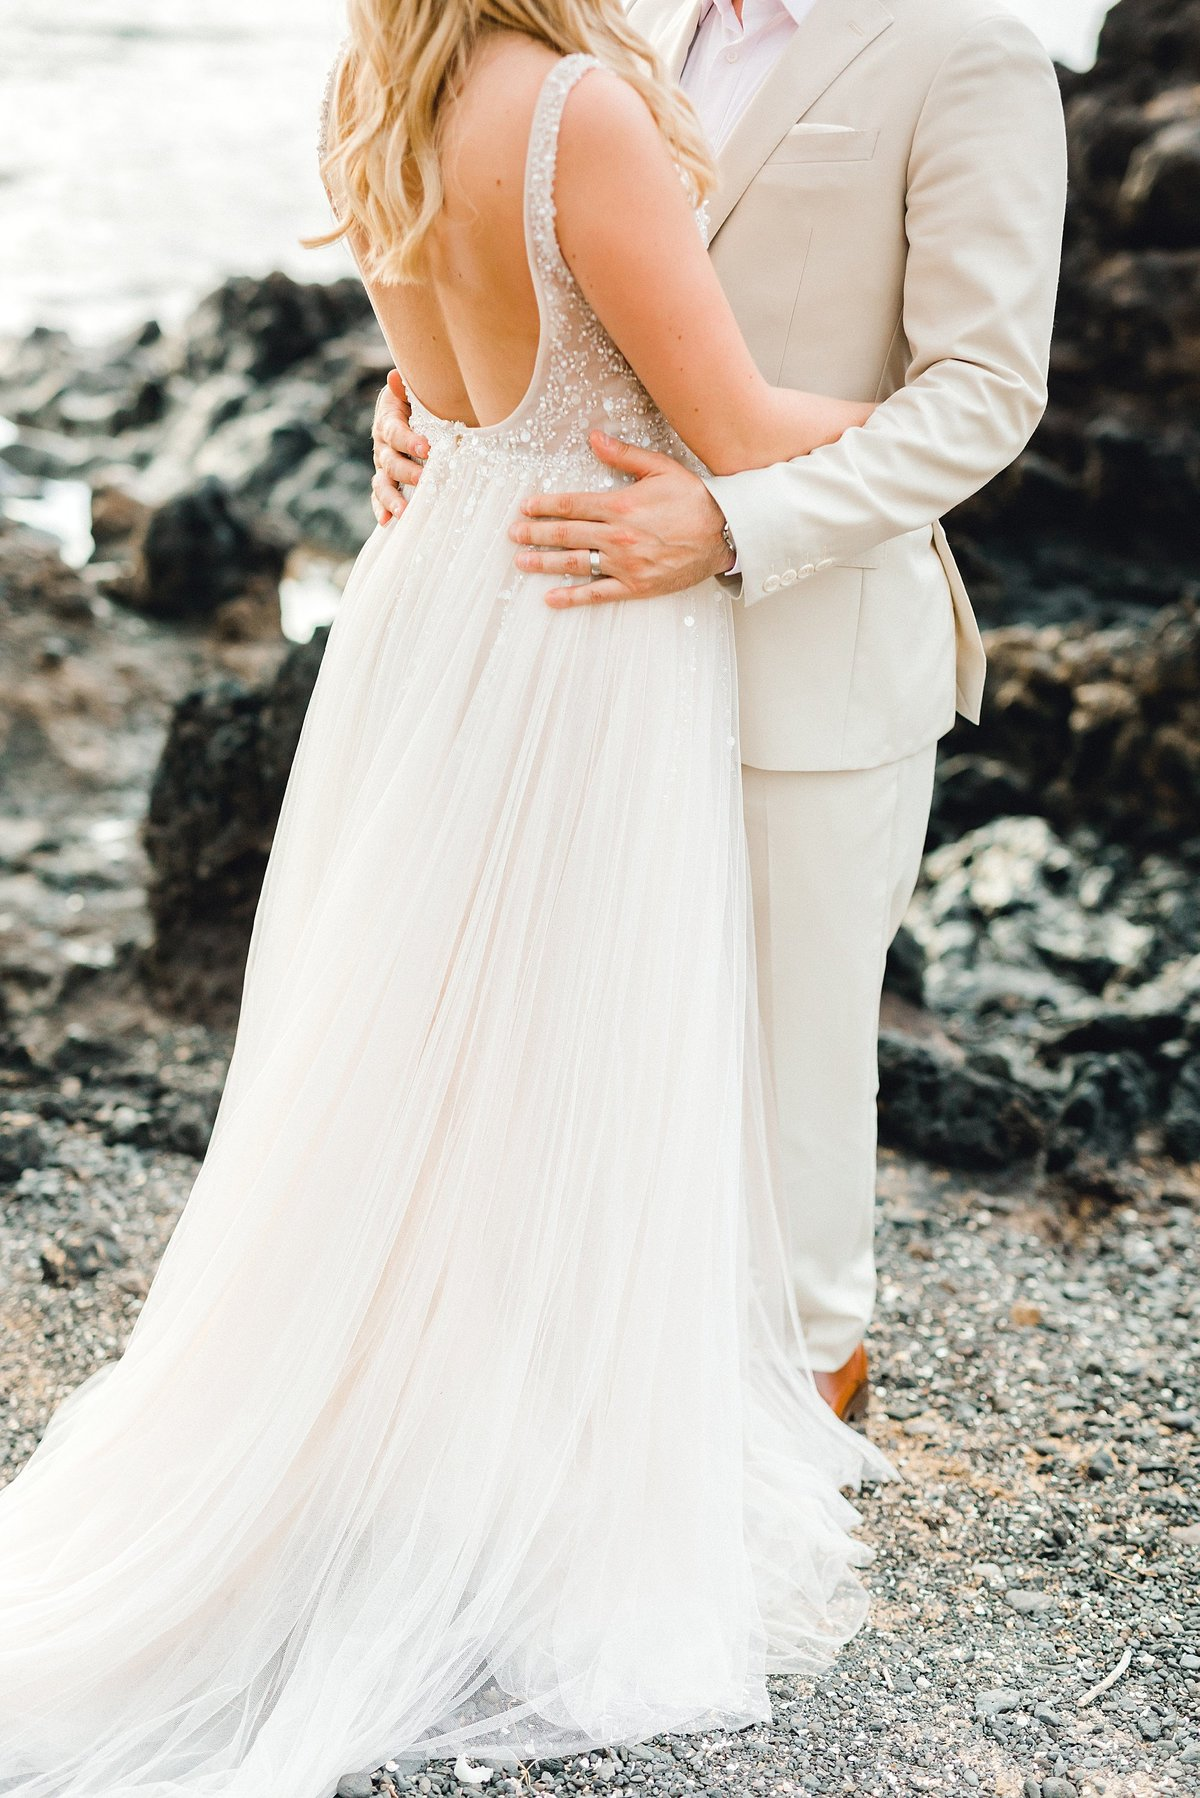 jenny_vargas-photography-maui-wedding-photographer-maui-wedding-photography-maui-photographer-maui-photographers-maui-elopement-photographer-maui-elopement-maui-wedding-maui-engagement-photographer_0950